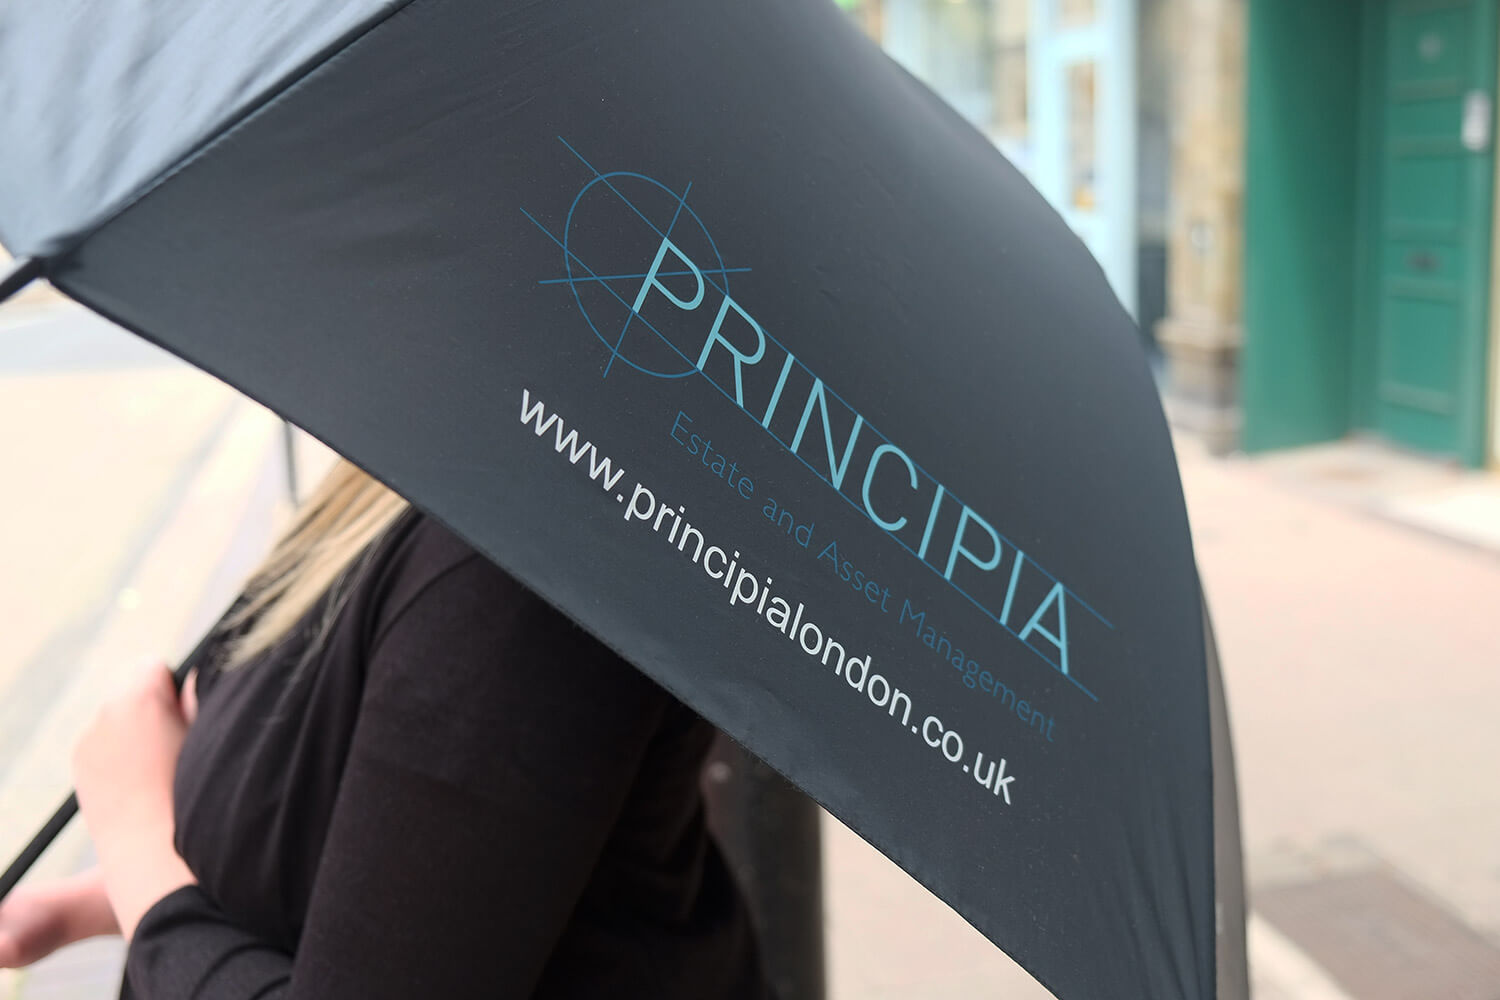 A photo of an umbrella featuring the Principia brand identity design